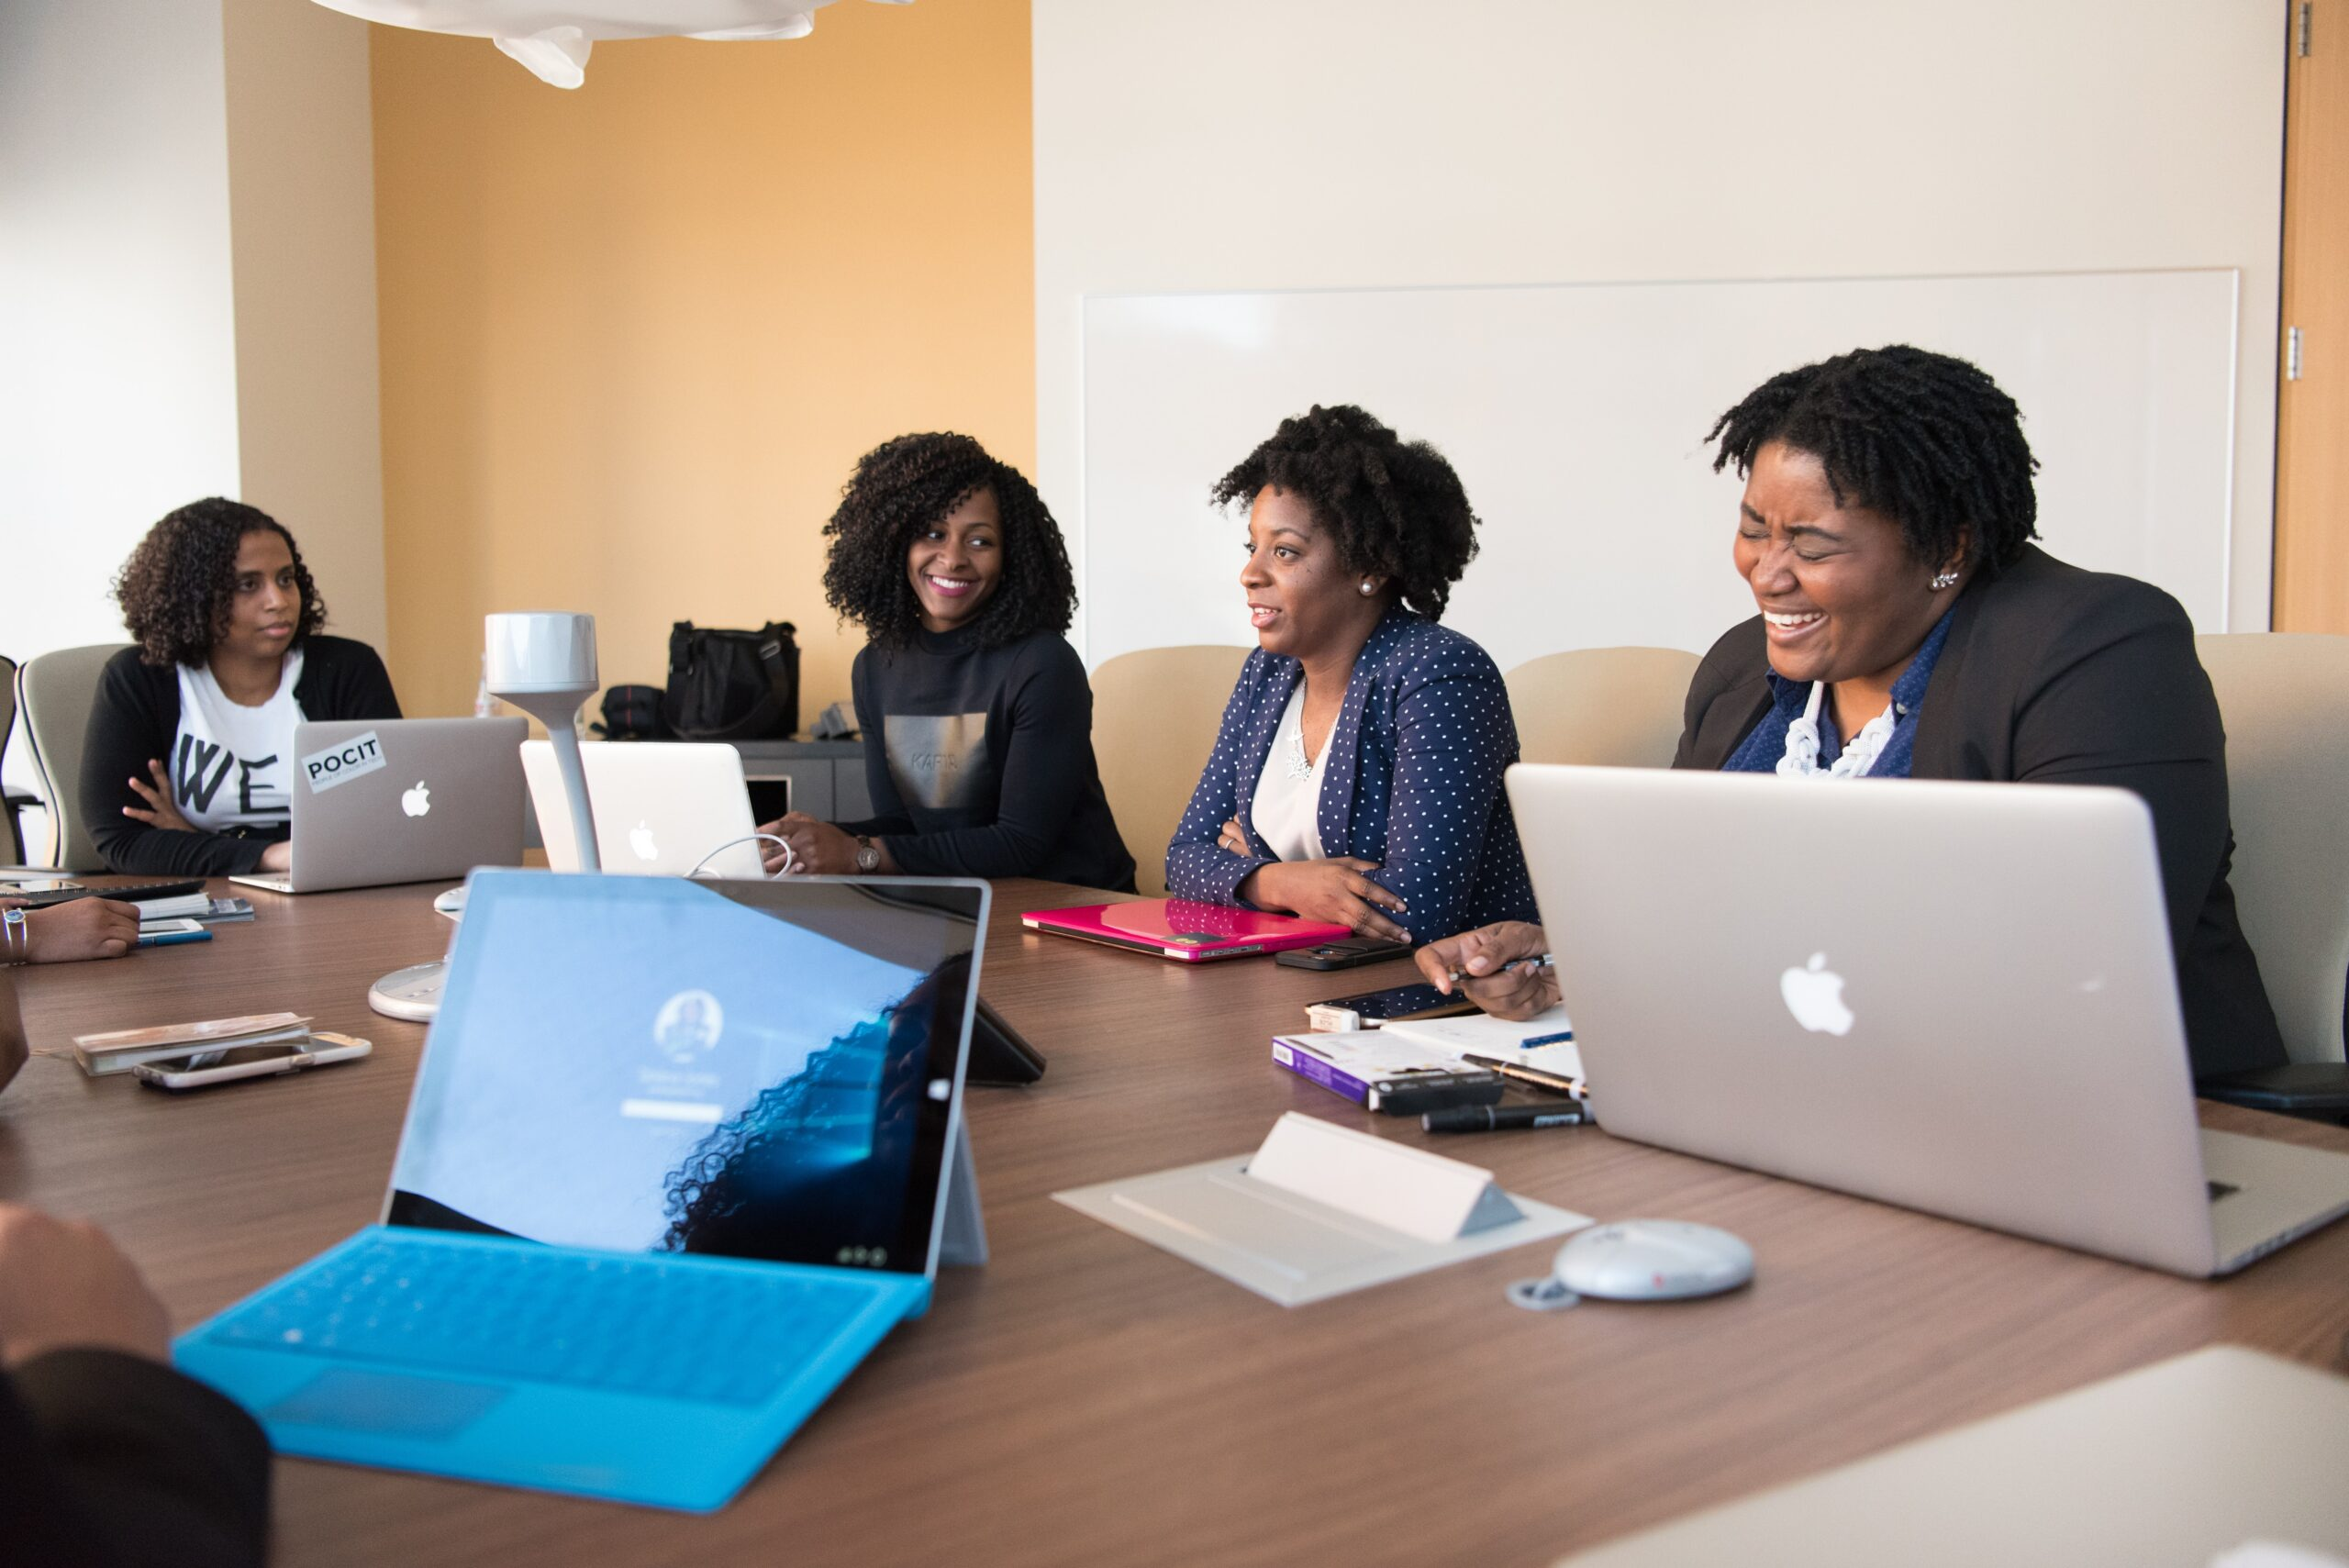 Event Planning Project Topics for undergraduates and Postgraduate Students In Cameroon